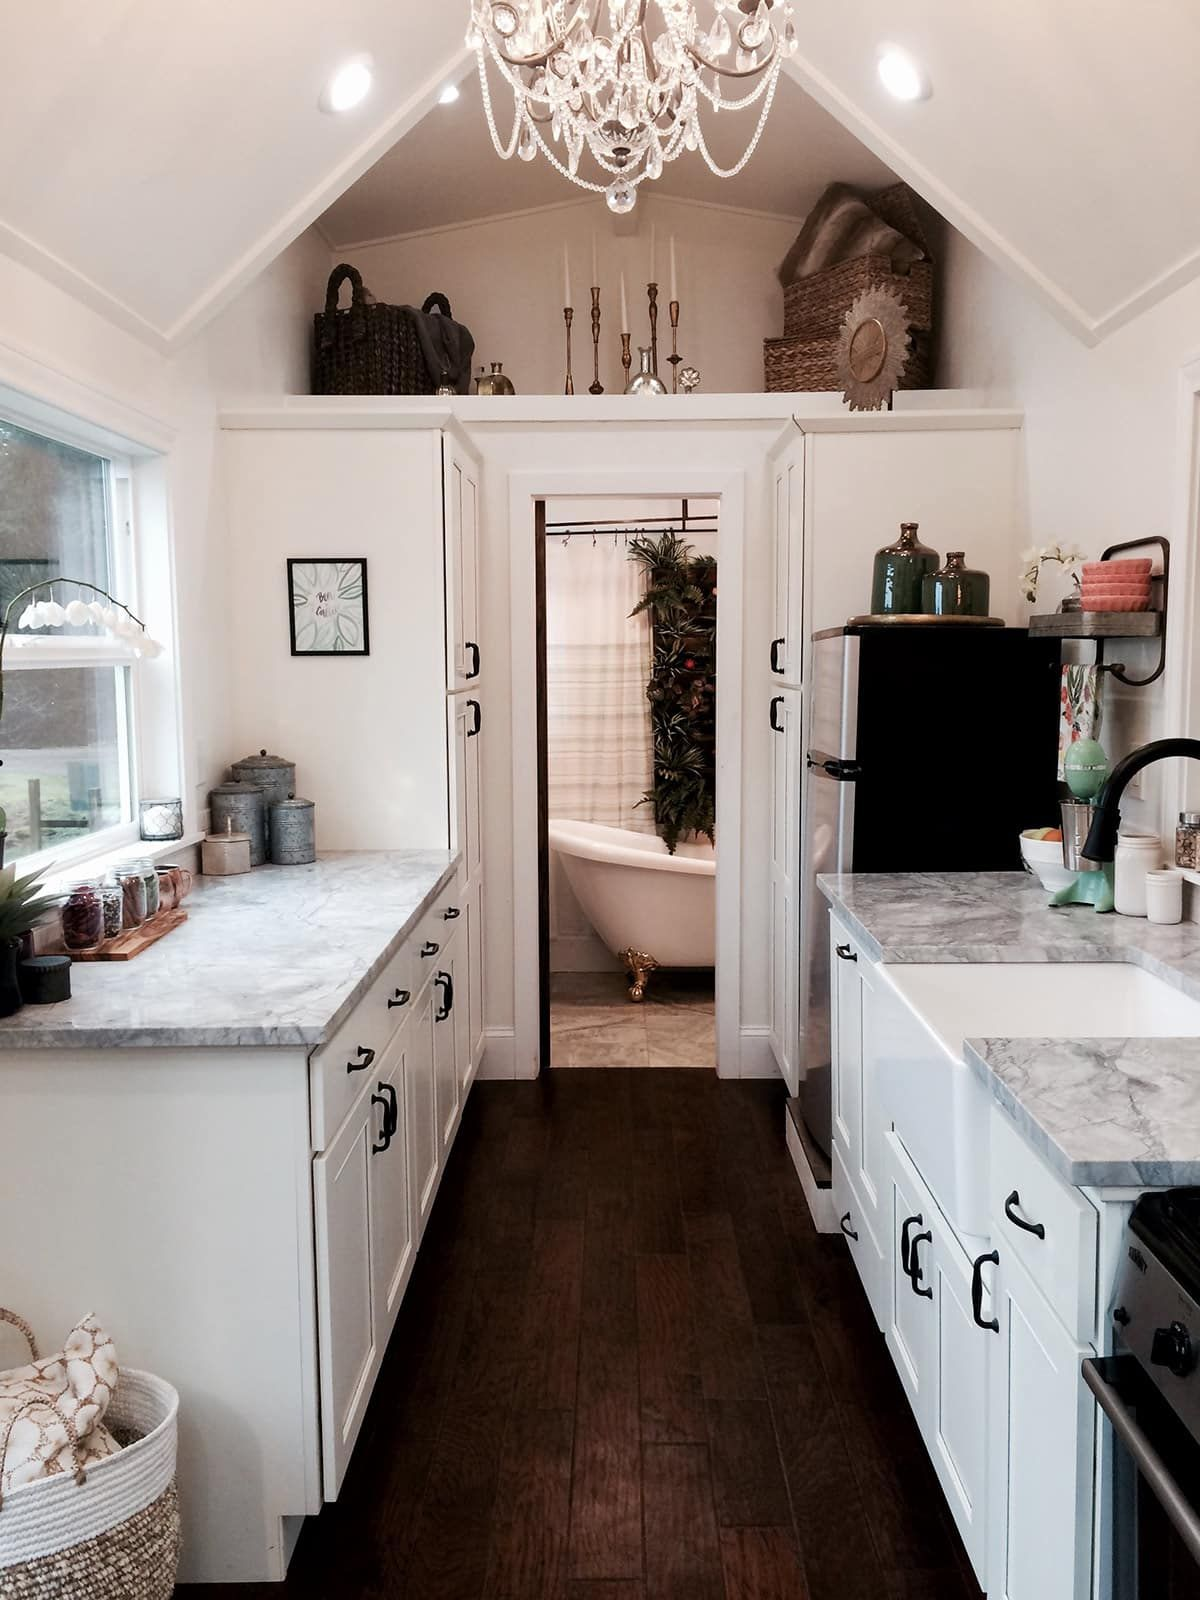 A Rustic Chic Blue Tiny House From Tiny Heirloom A Tiny House - Tiny house design portland